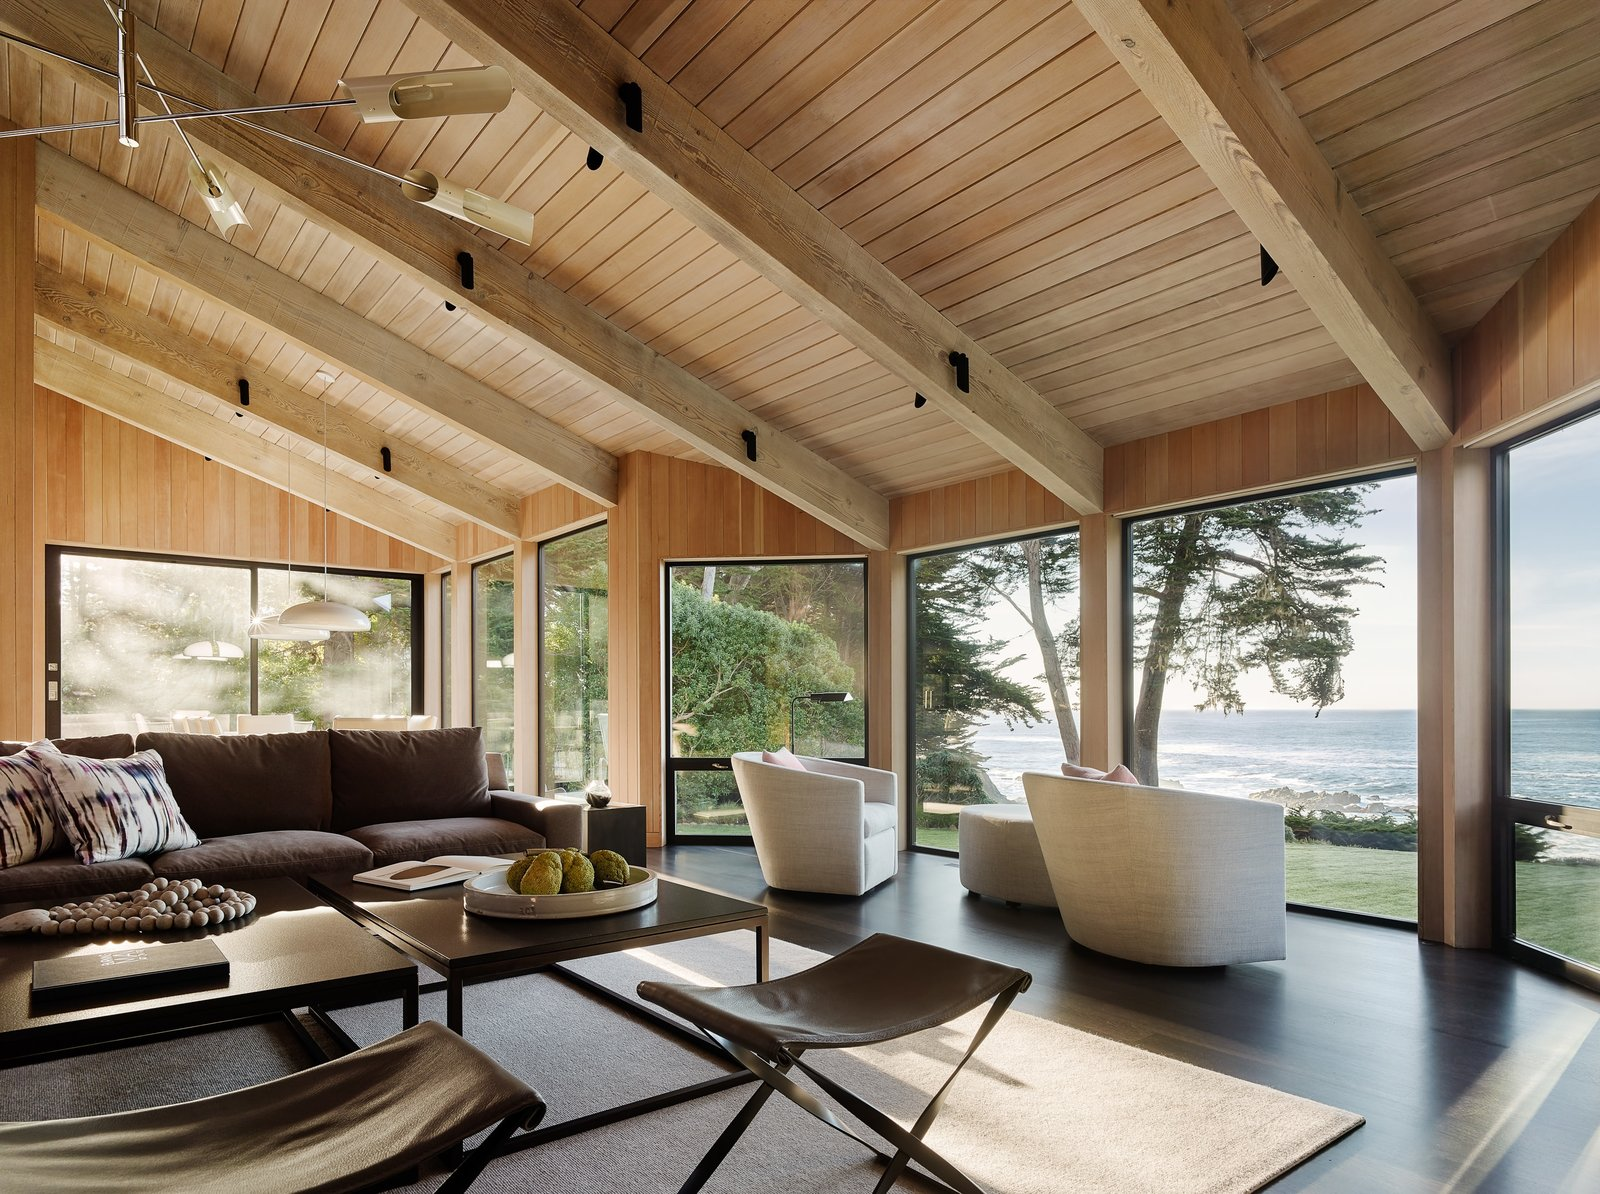 Sea Ranch Butler Armsden Architects